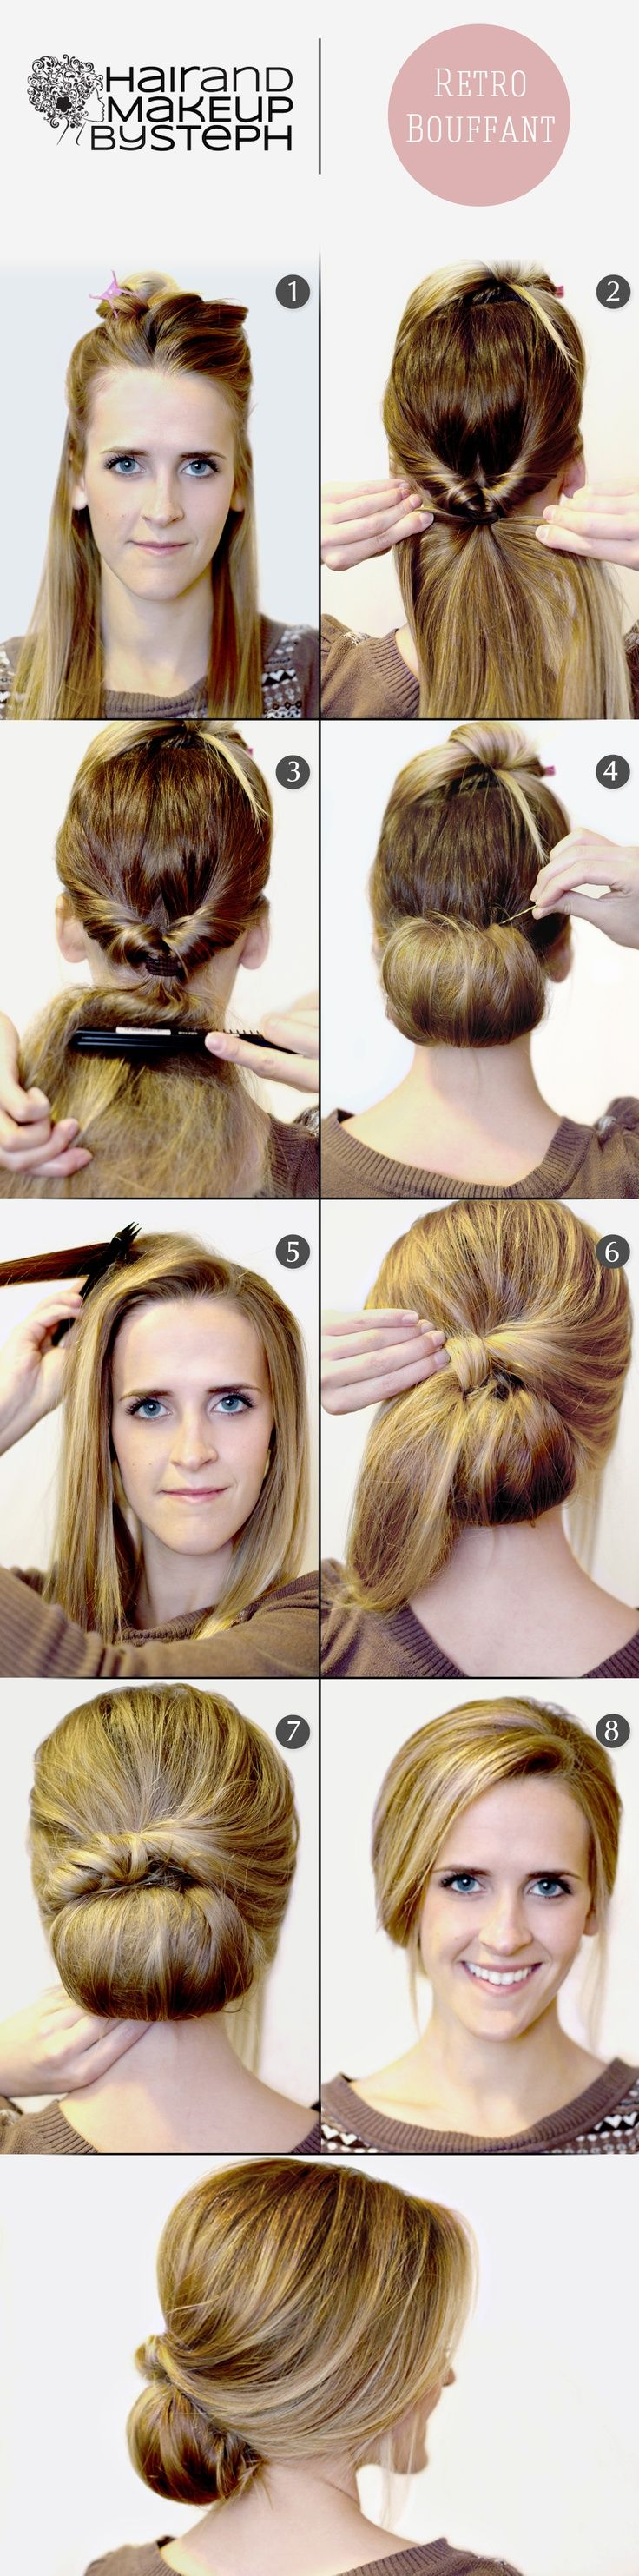 How to: Retro bouffant hair